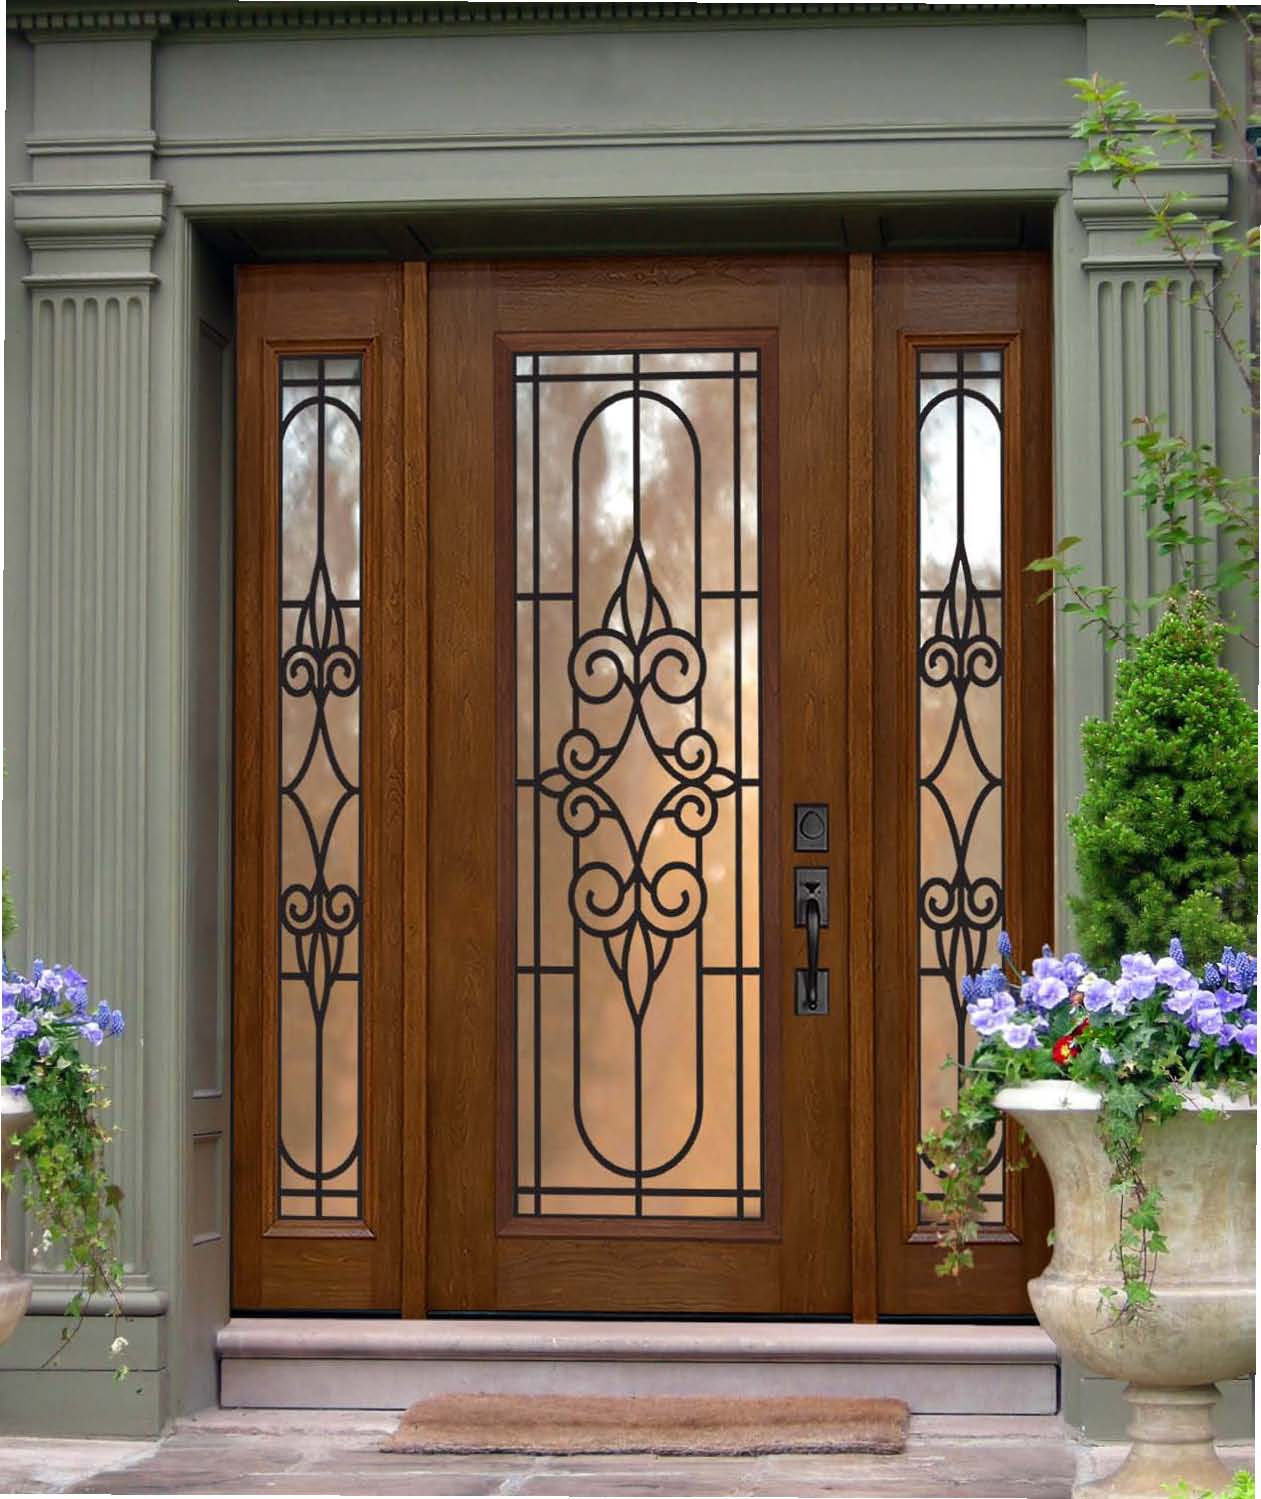 1499 #613B1E US Door And More Inc.: Make Your Entry Door Trendy With Sidelights save image Fiberglass Entry Doors With Sidelites 42671261